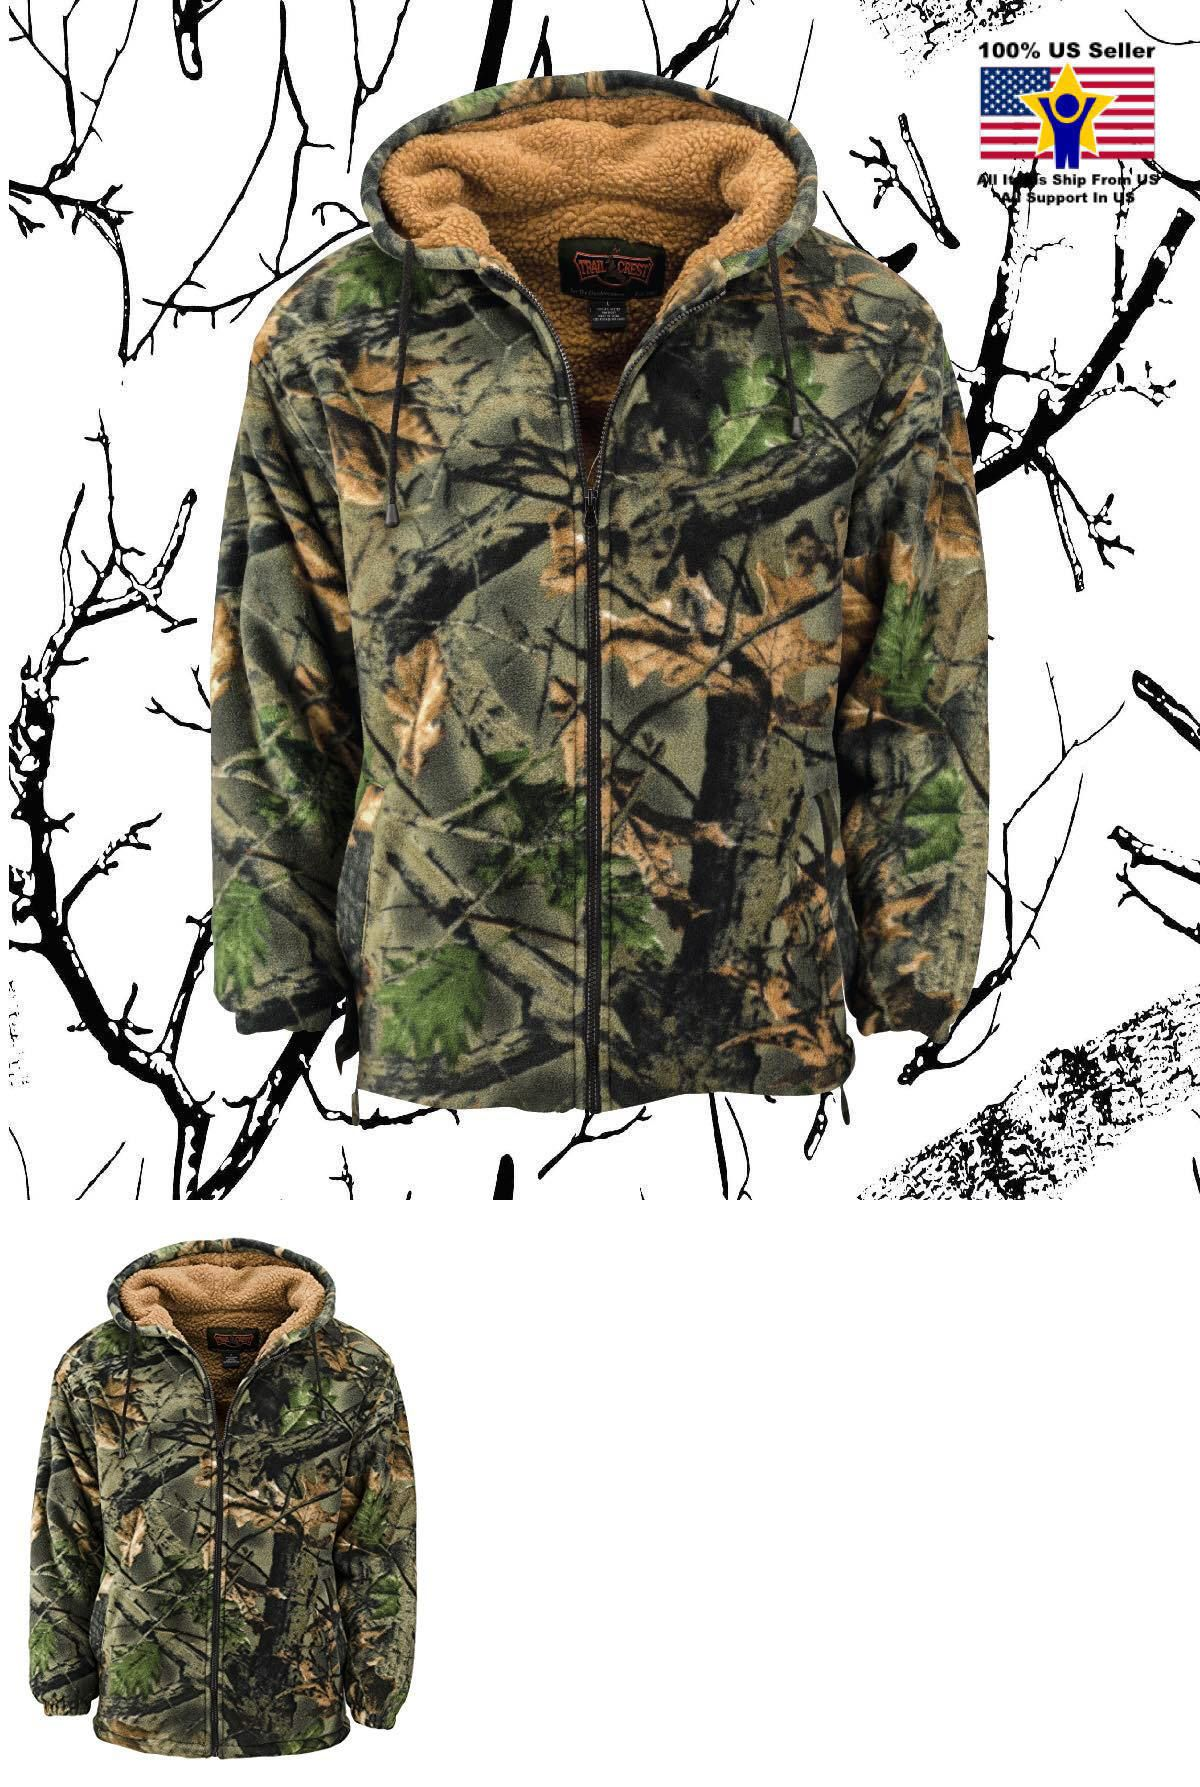 70e3e215406f6 Outerwear 155195: Trailcrest Men S Fleece Hoodie Camo Green Camouflage  Jacket Outdoor Hunt Sport -> BUY IT NOW ONLY: $59.95 on #eBay #outerwear  #trailcrest ...